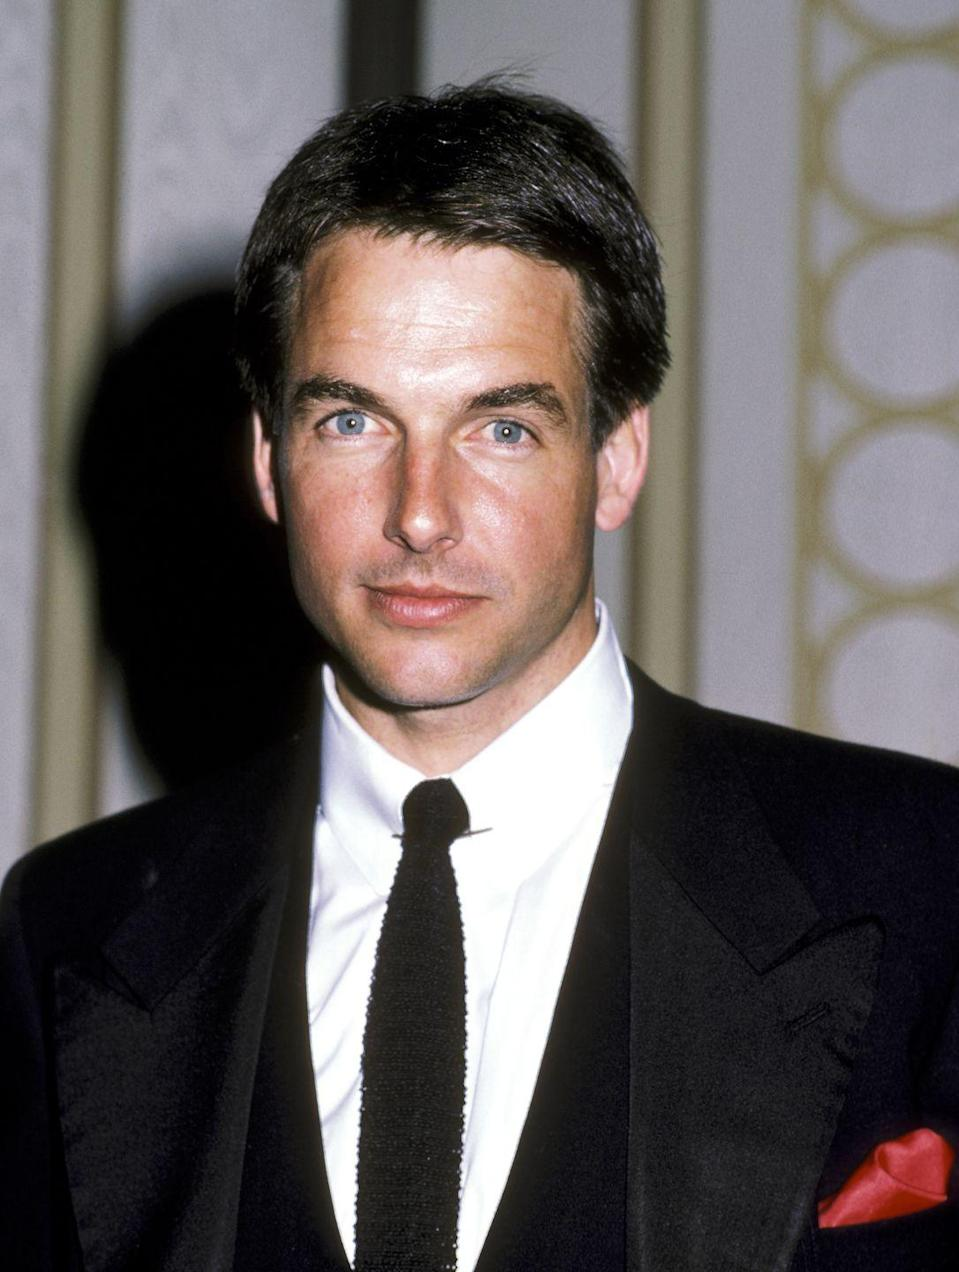 "<p>Before he starred on <em>NCIS,</em> Harmon was an '80s heartthrob with dark brown hair. The actor was even voted as <a href=""https://people.com/celebrity/mark-harmon-peoples-sexiest-man-alive-1986/"" rel=""nofollow noopener"" target=""_blank"" data-ylk=""slk:People's Sexiest Man Alive in 1986"" class=""link rapid-noclick-resp""><em>People</em>'s Sexiest Man Alive in 1986</a>. </p>"